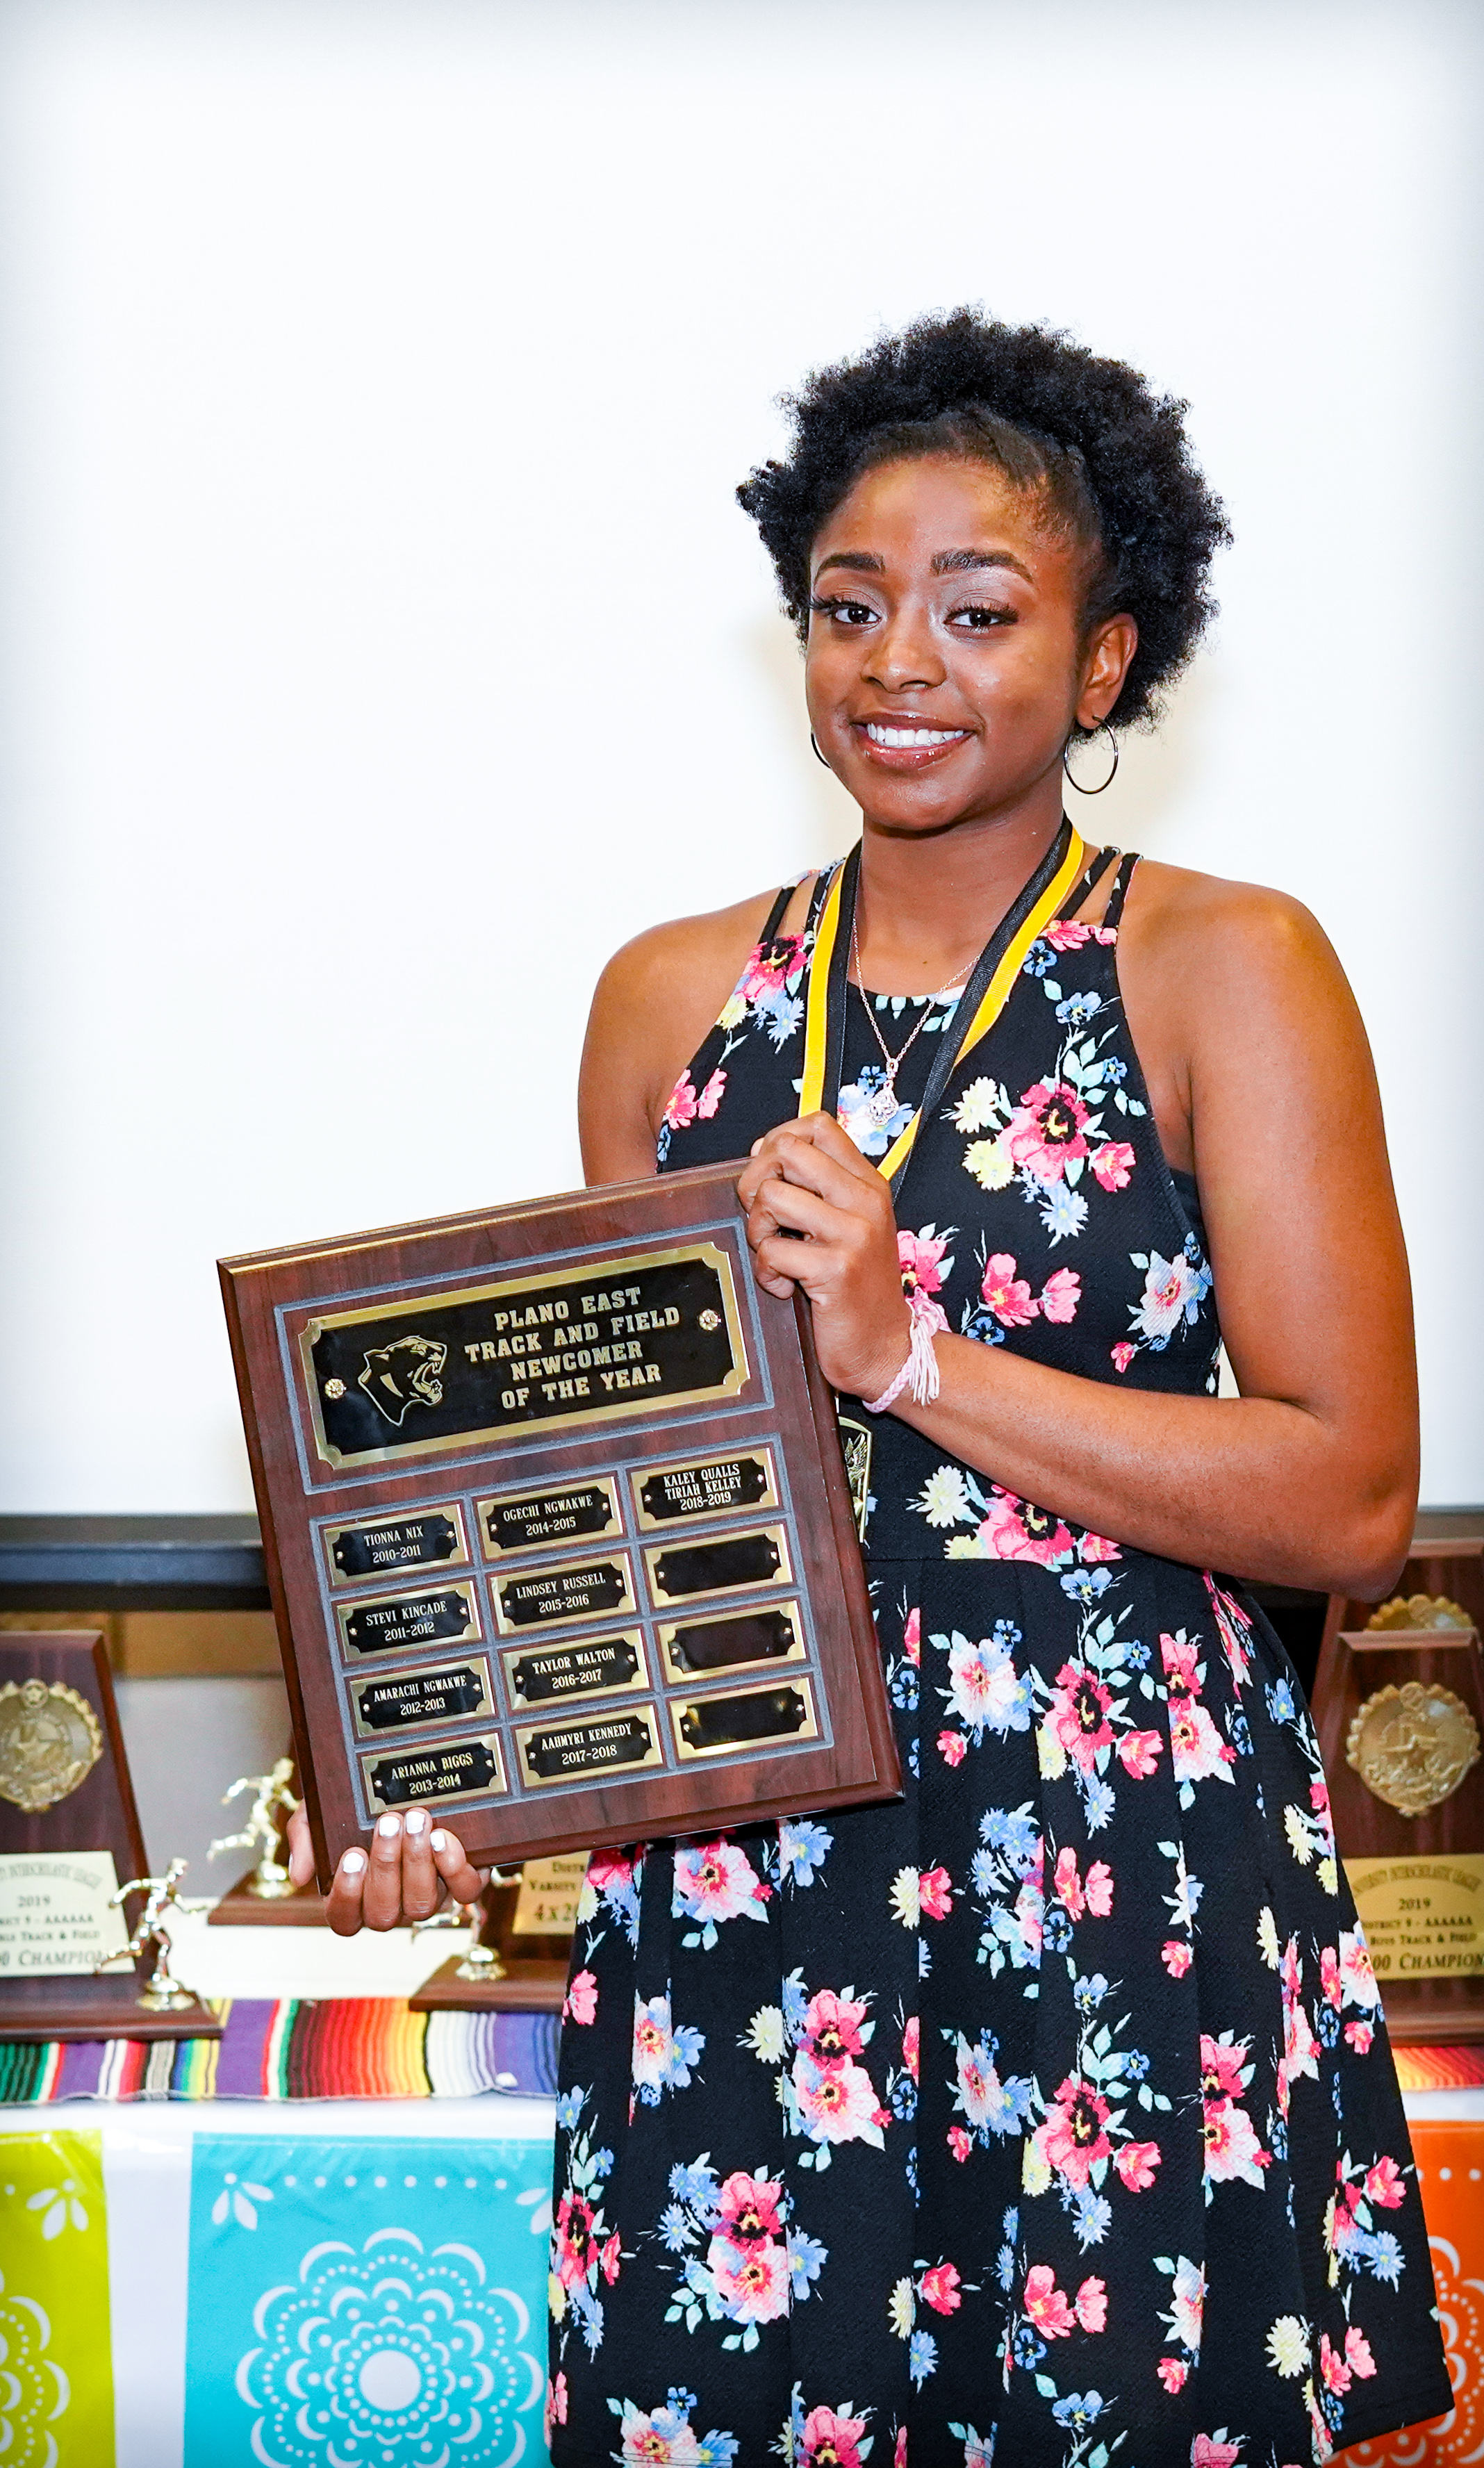 Tiriah Kelley (pictured) and Kaley Qualls share the Newcomer of the Year award.